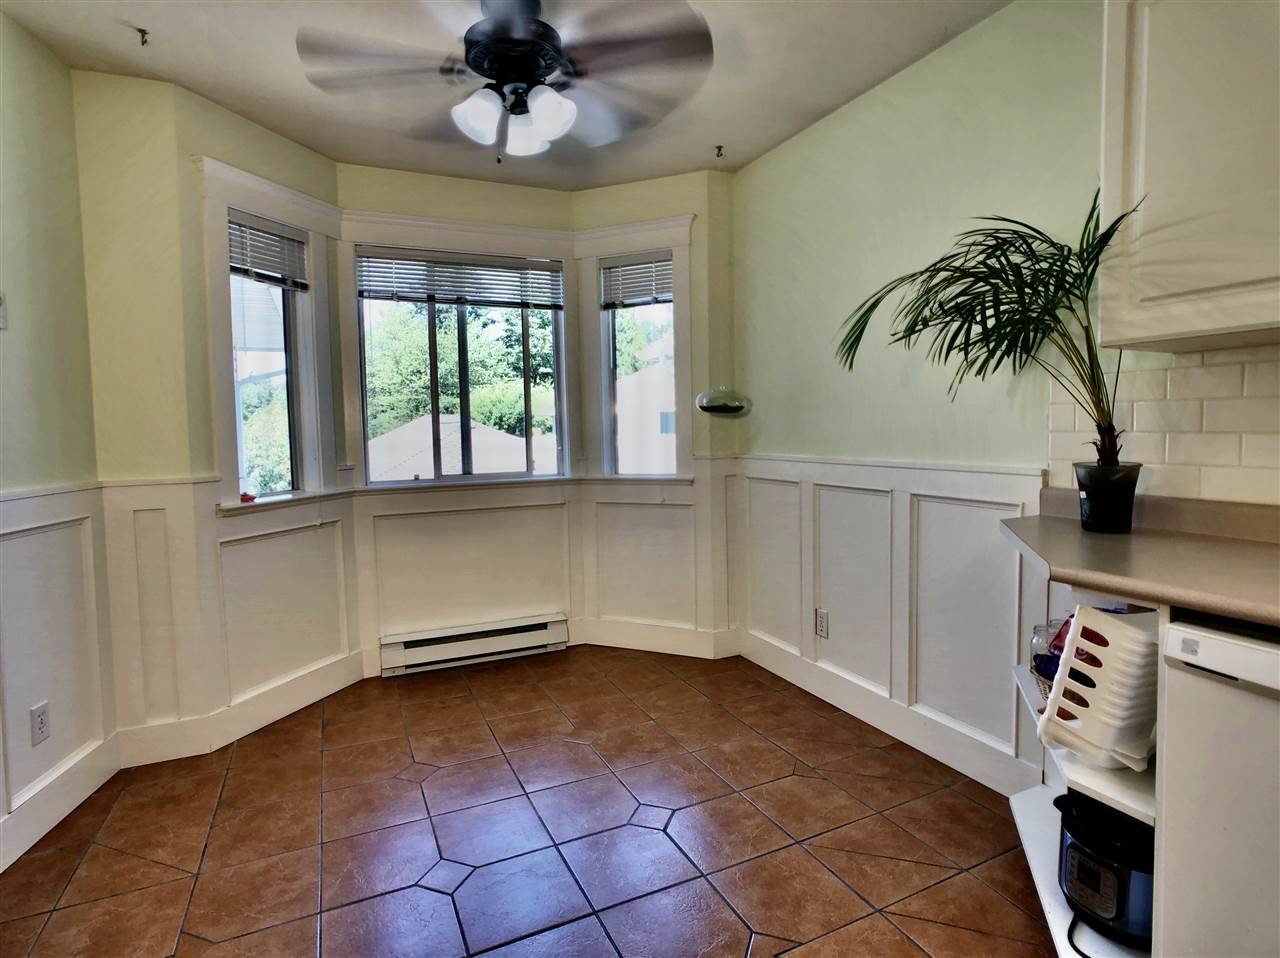 207 9310 KING GEORGE BOULEVARD - Bear Creek Green Timbers Townhouse for sale, 3 Bedrooms (R2481092) - #7